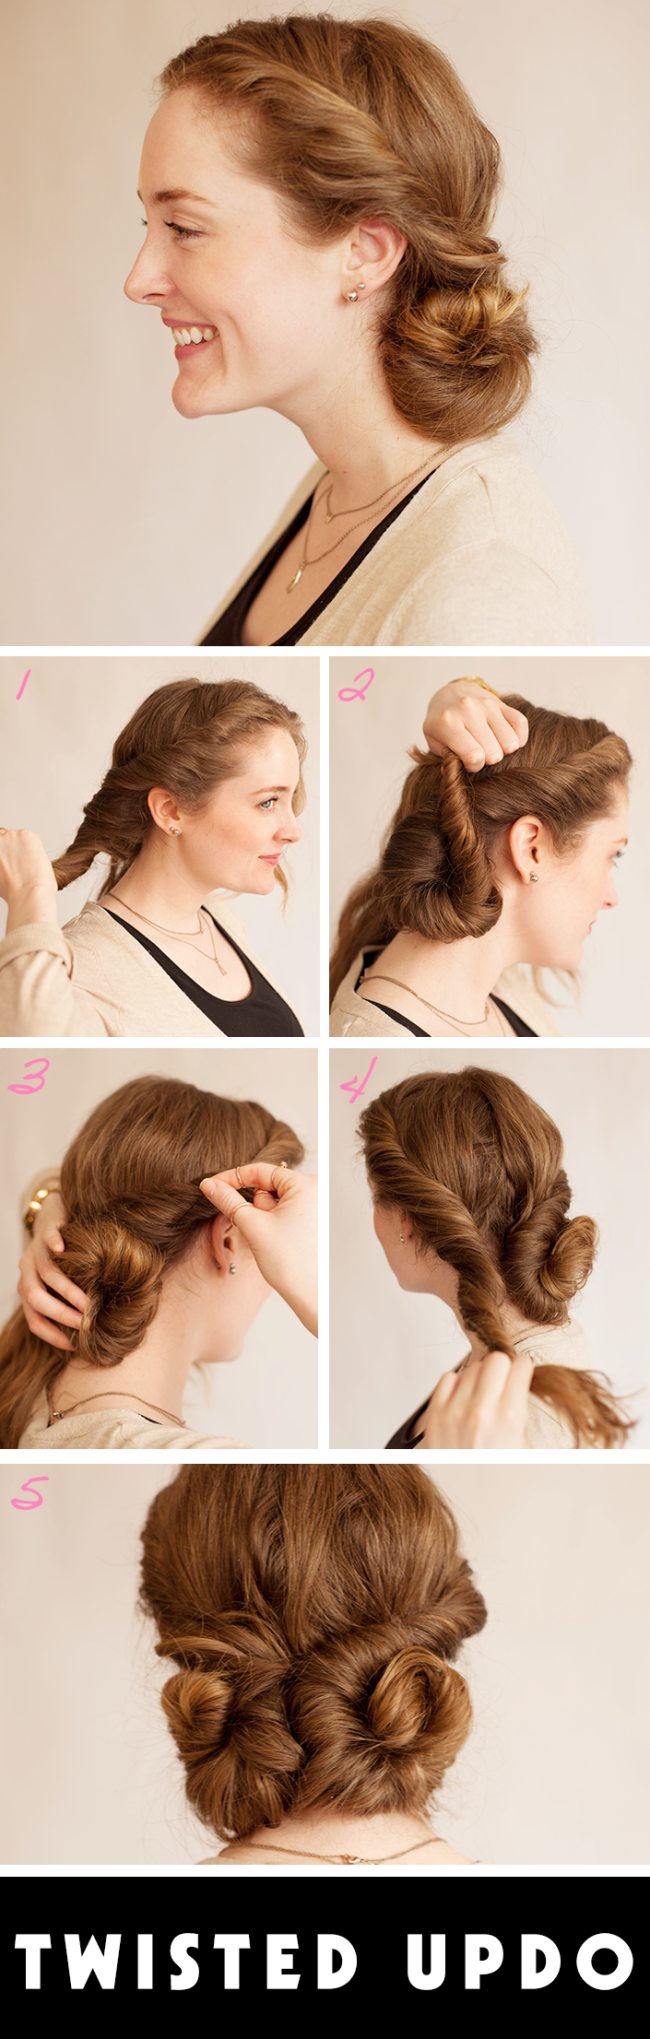 12 Great Step-by-Step Updo Hair Tutorials